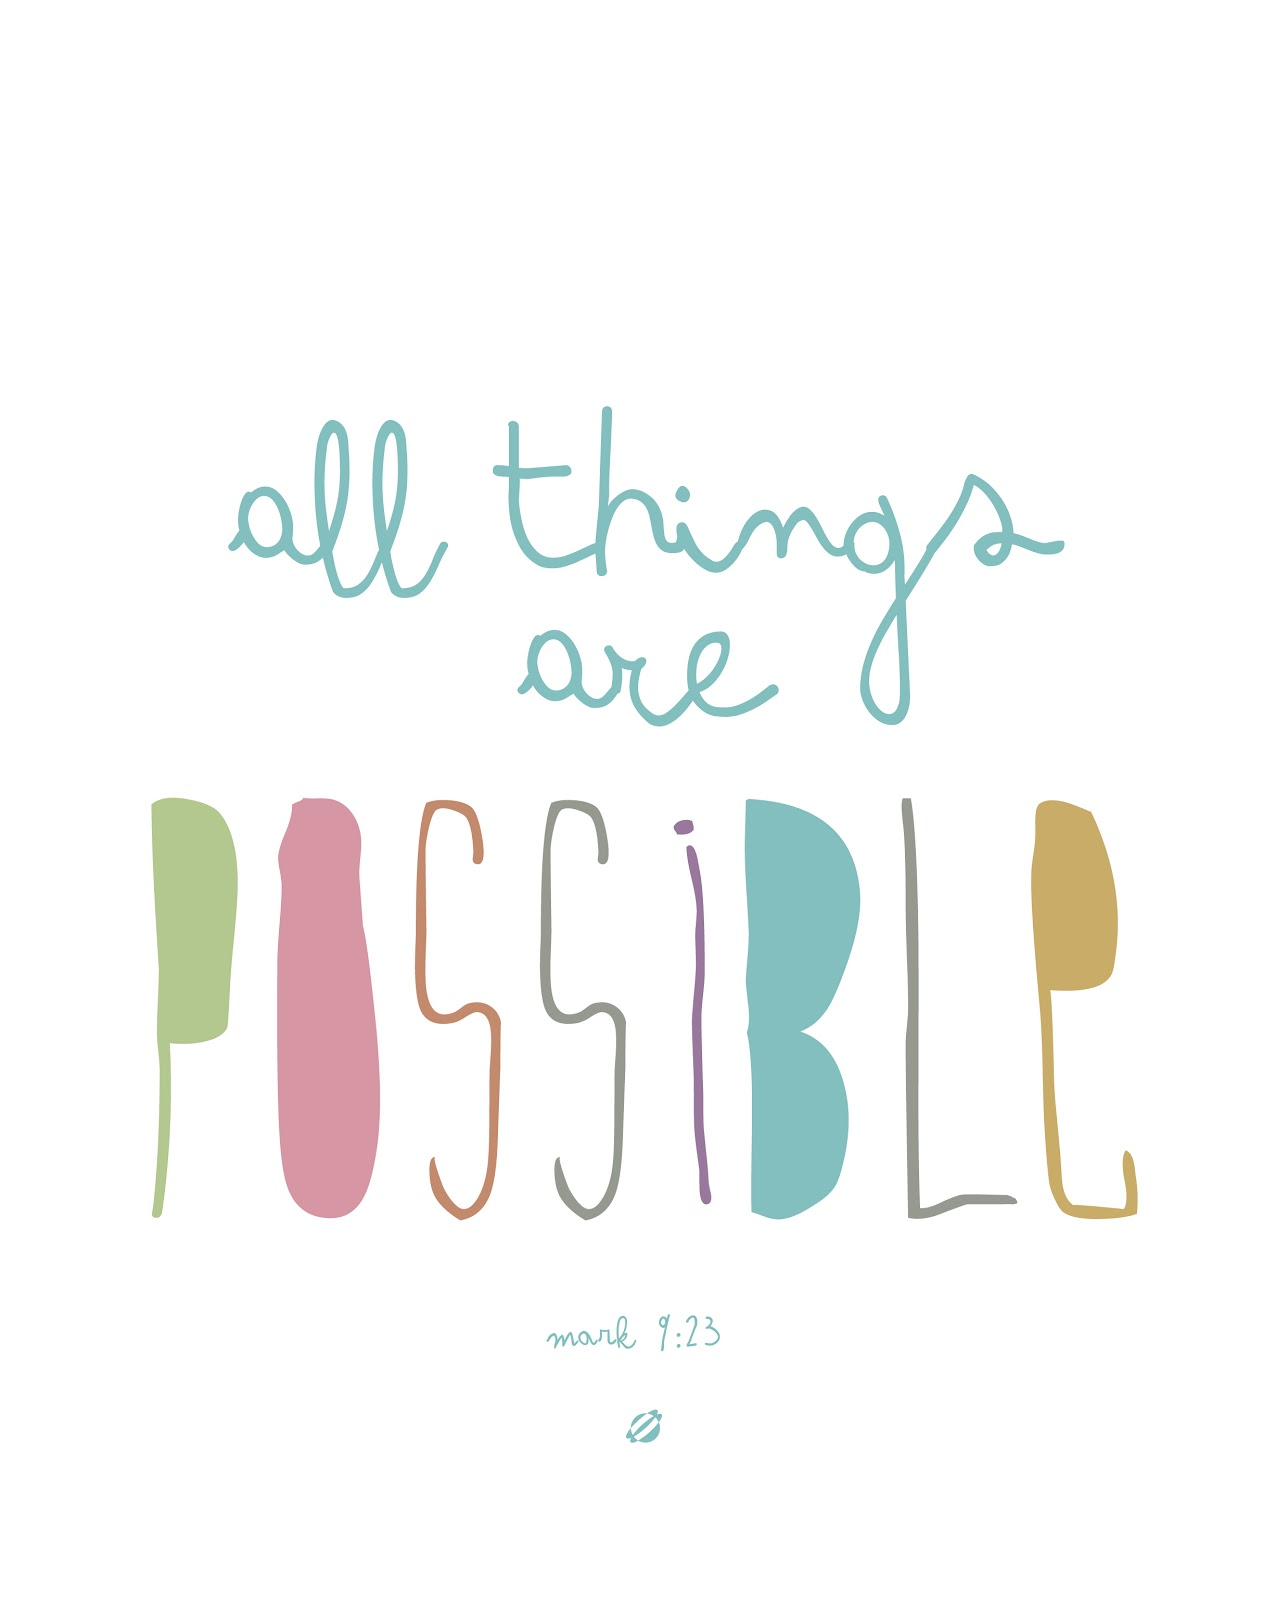 LostBumblebee ©2014 All Things Are Possible! - Free Printable- Personal Use Only.